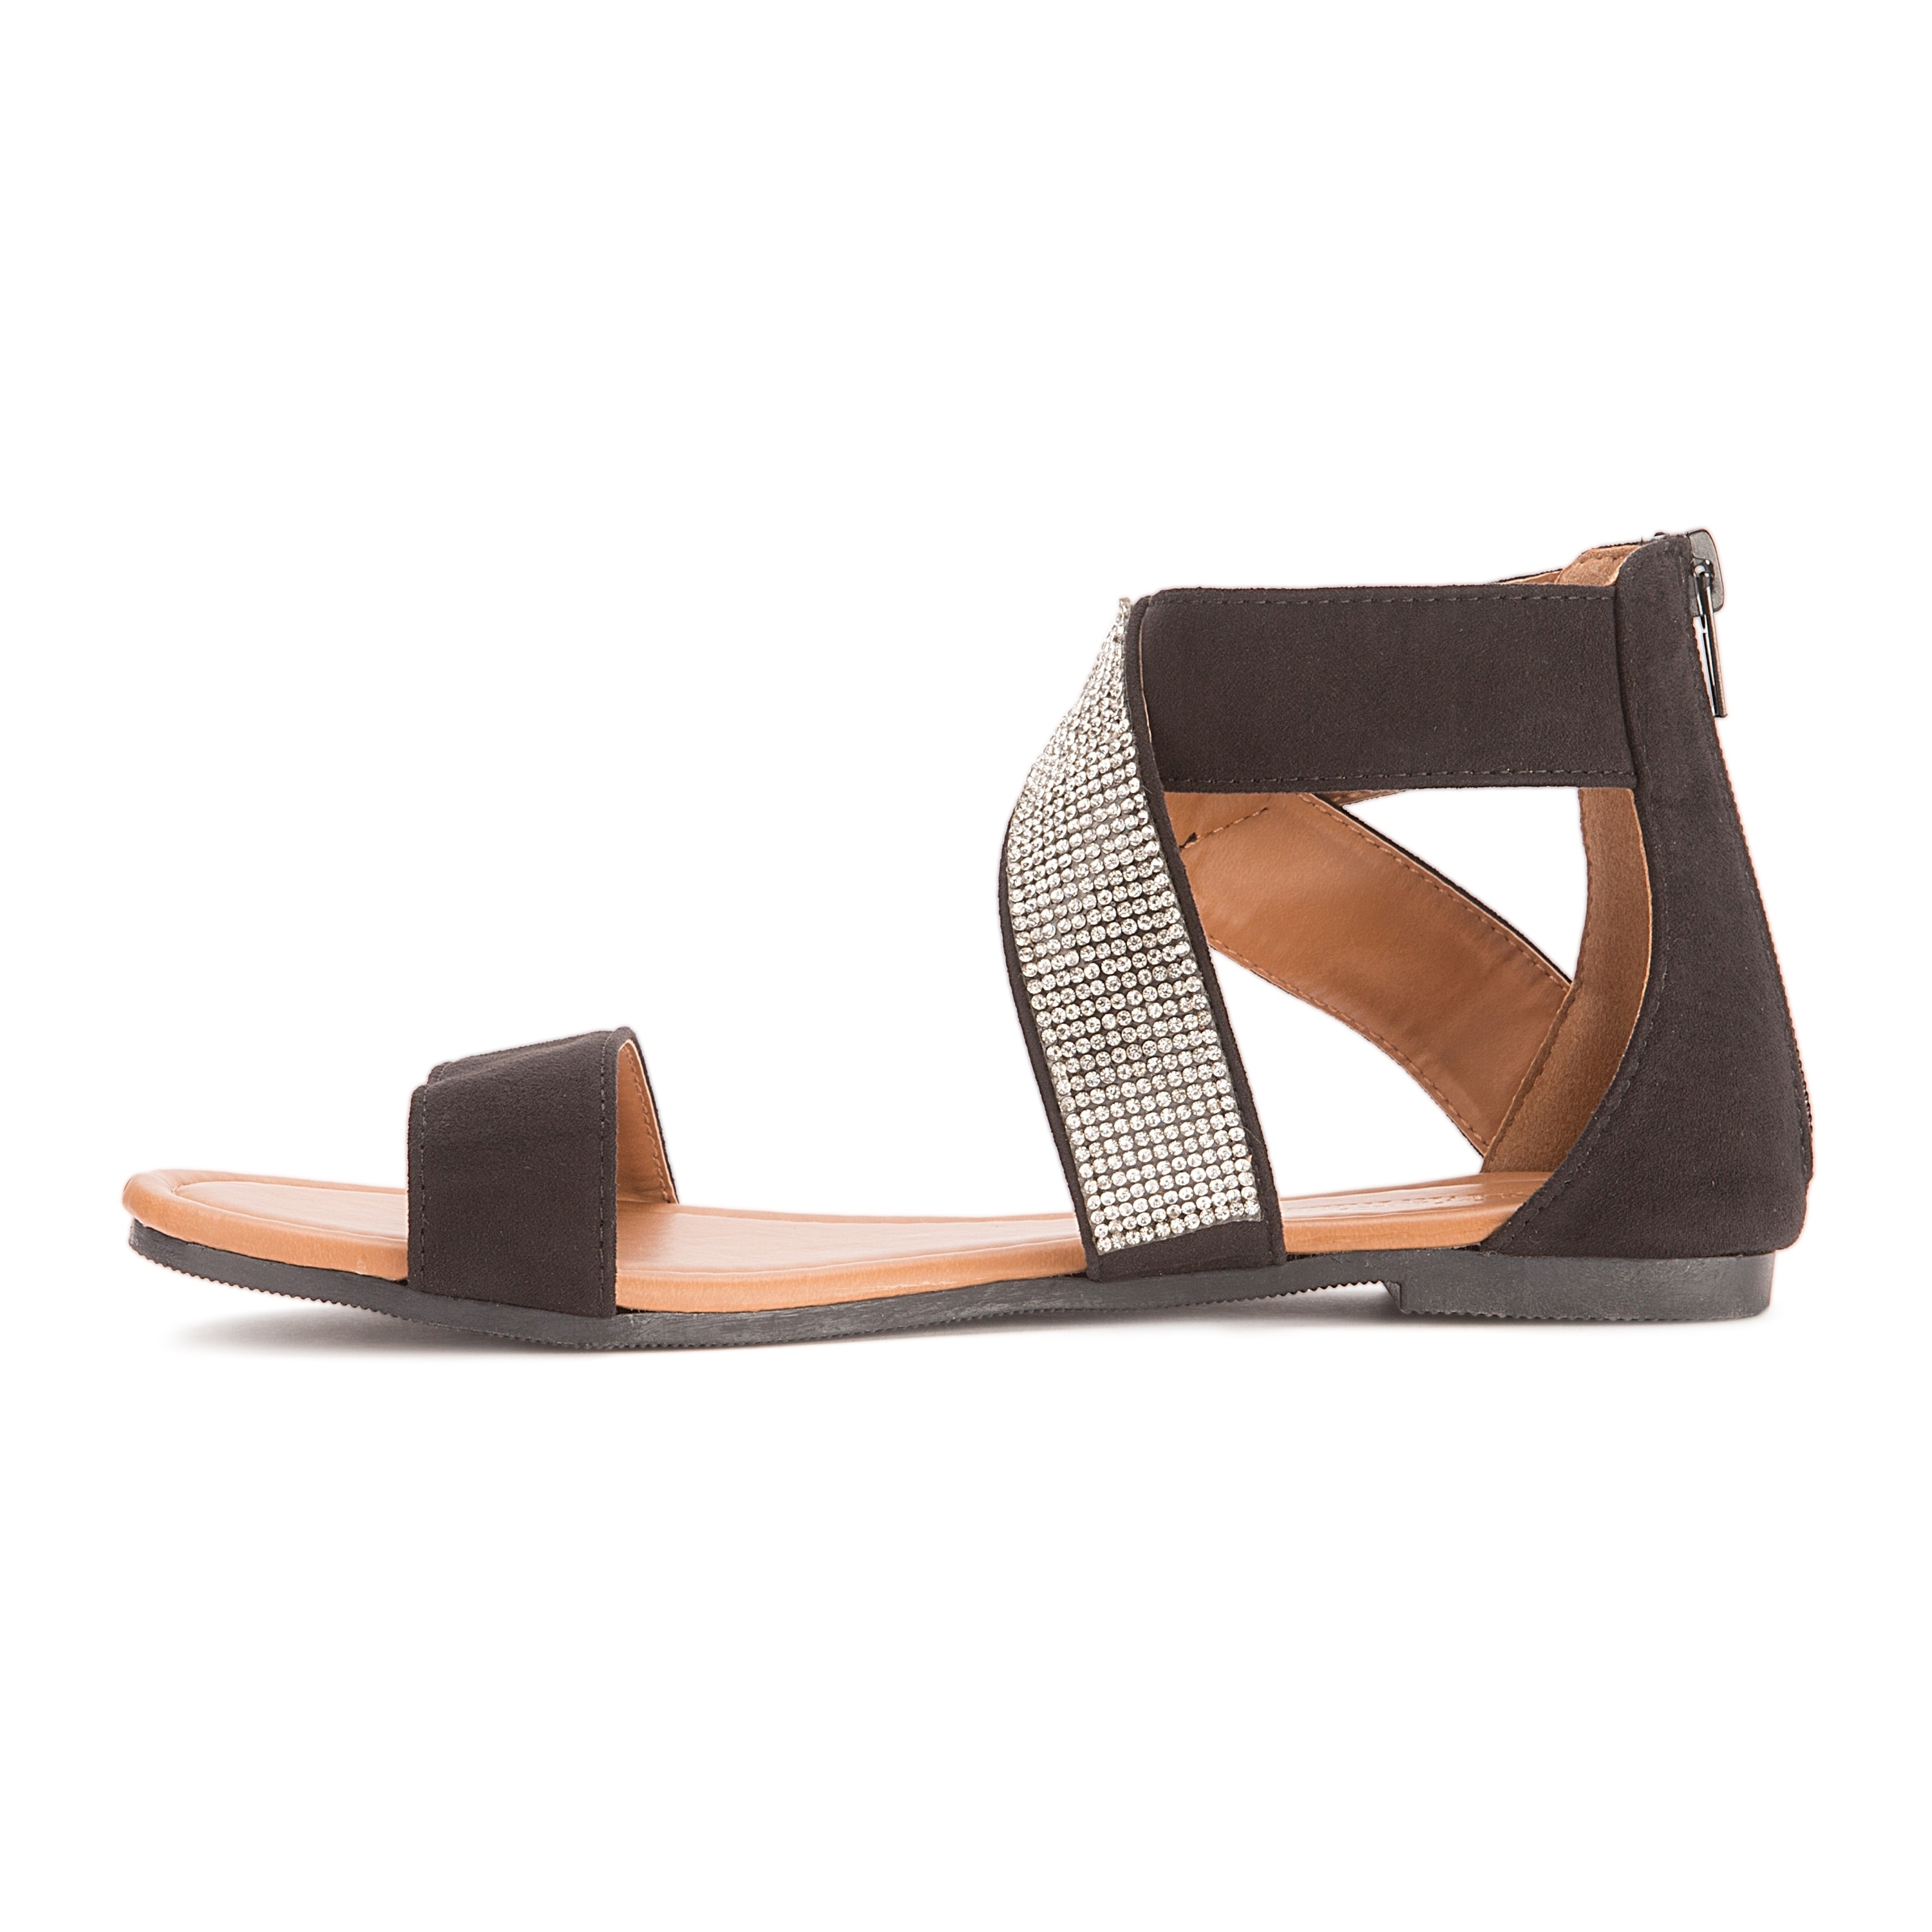 ff2a64c6df308 Shop Olivia Miller  Labelle  Multi Rhinestone Strap Sandals - Free Shipping  On Orders Over  45 - Overstock - 20338692